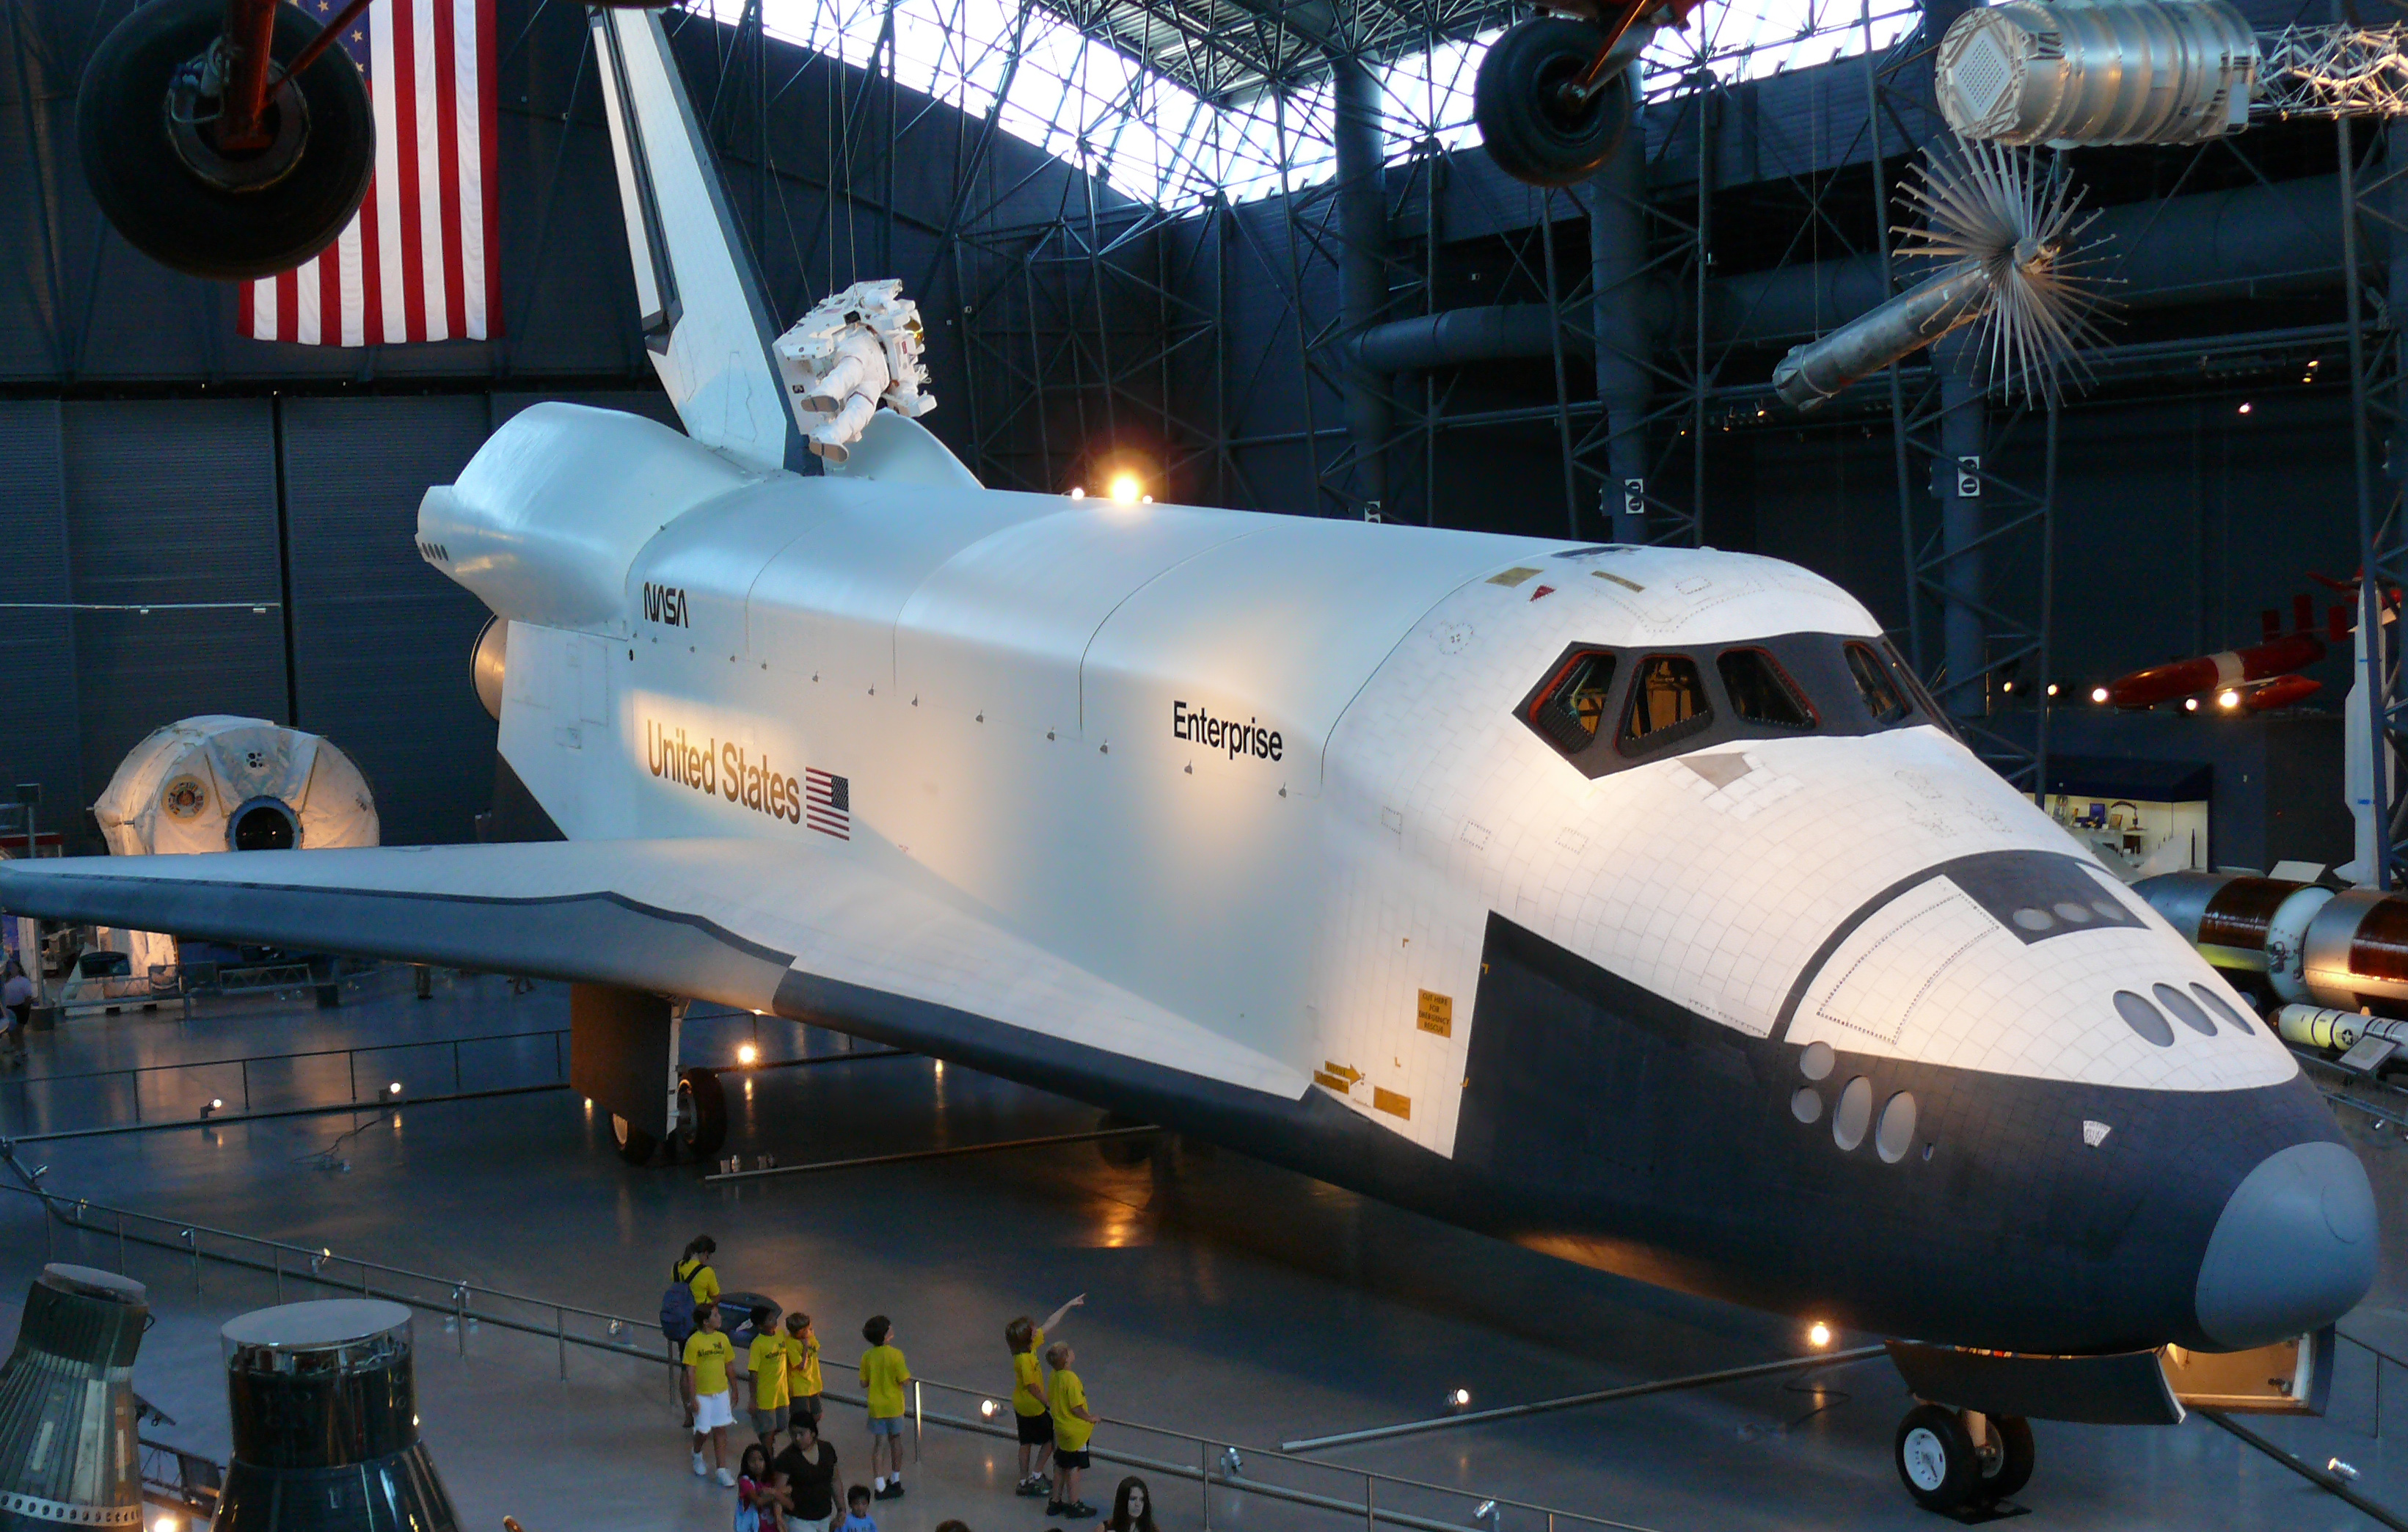 File:Space shuttle enterprise.jpg - Wikipedia